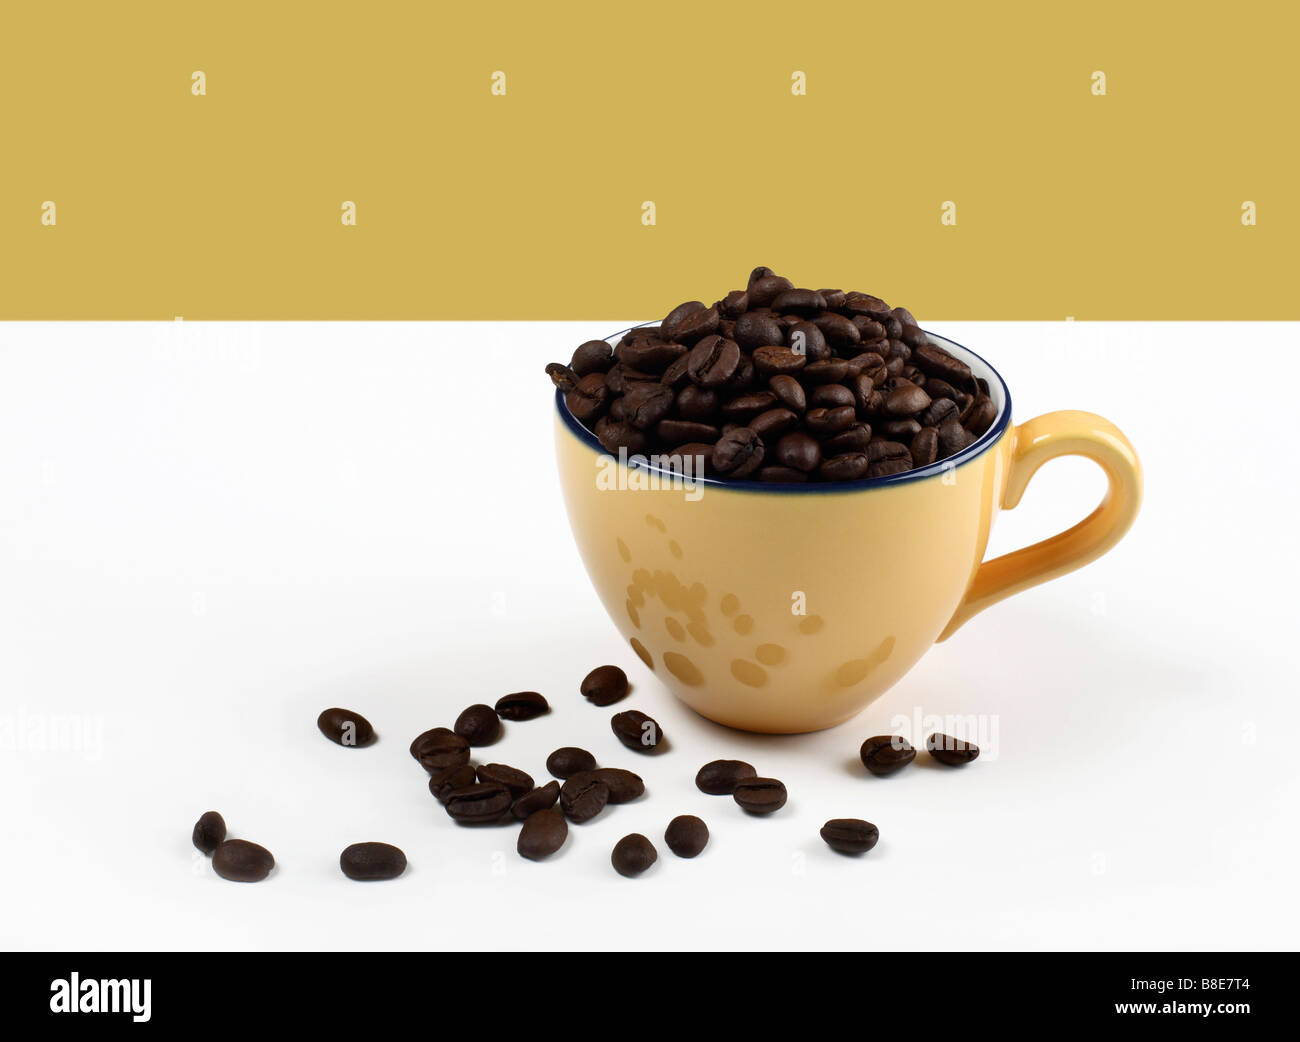 Coffee cup filled with coffee beans - Stock Image